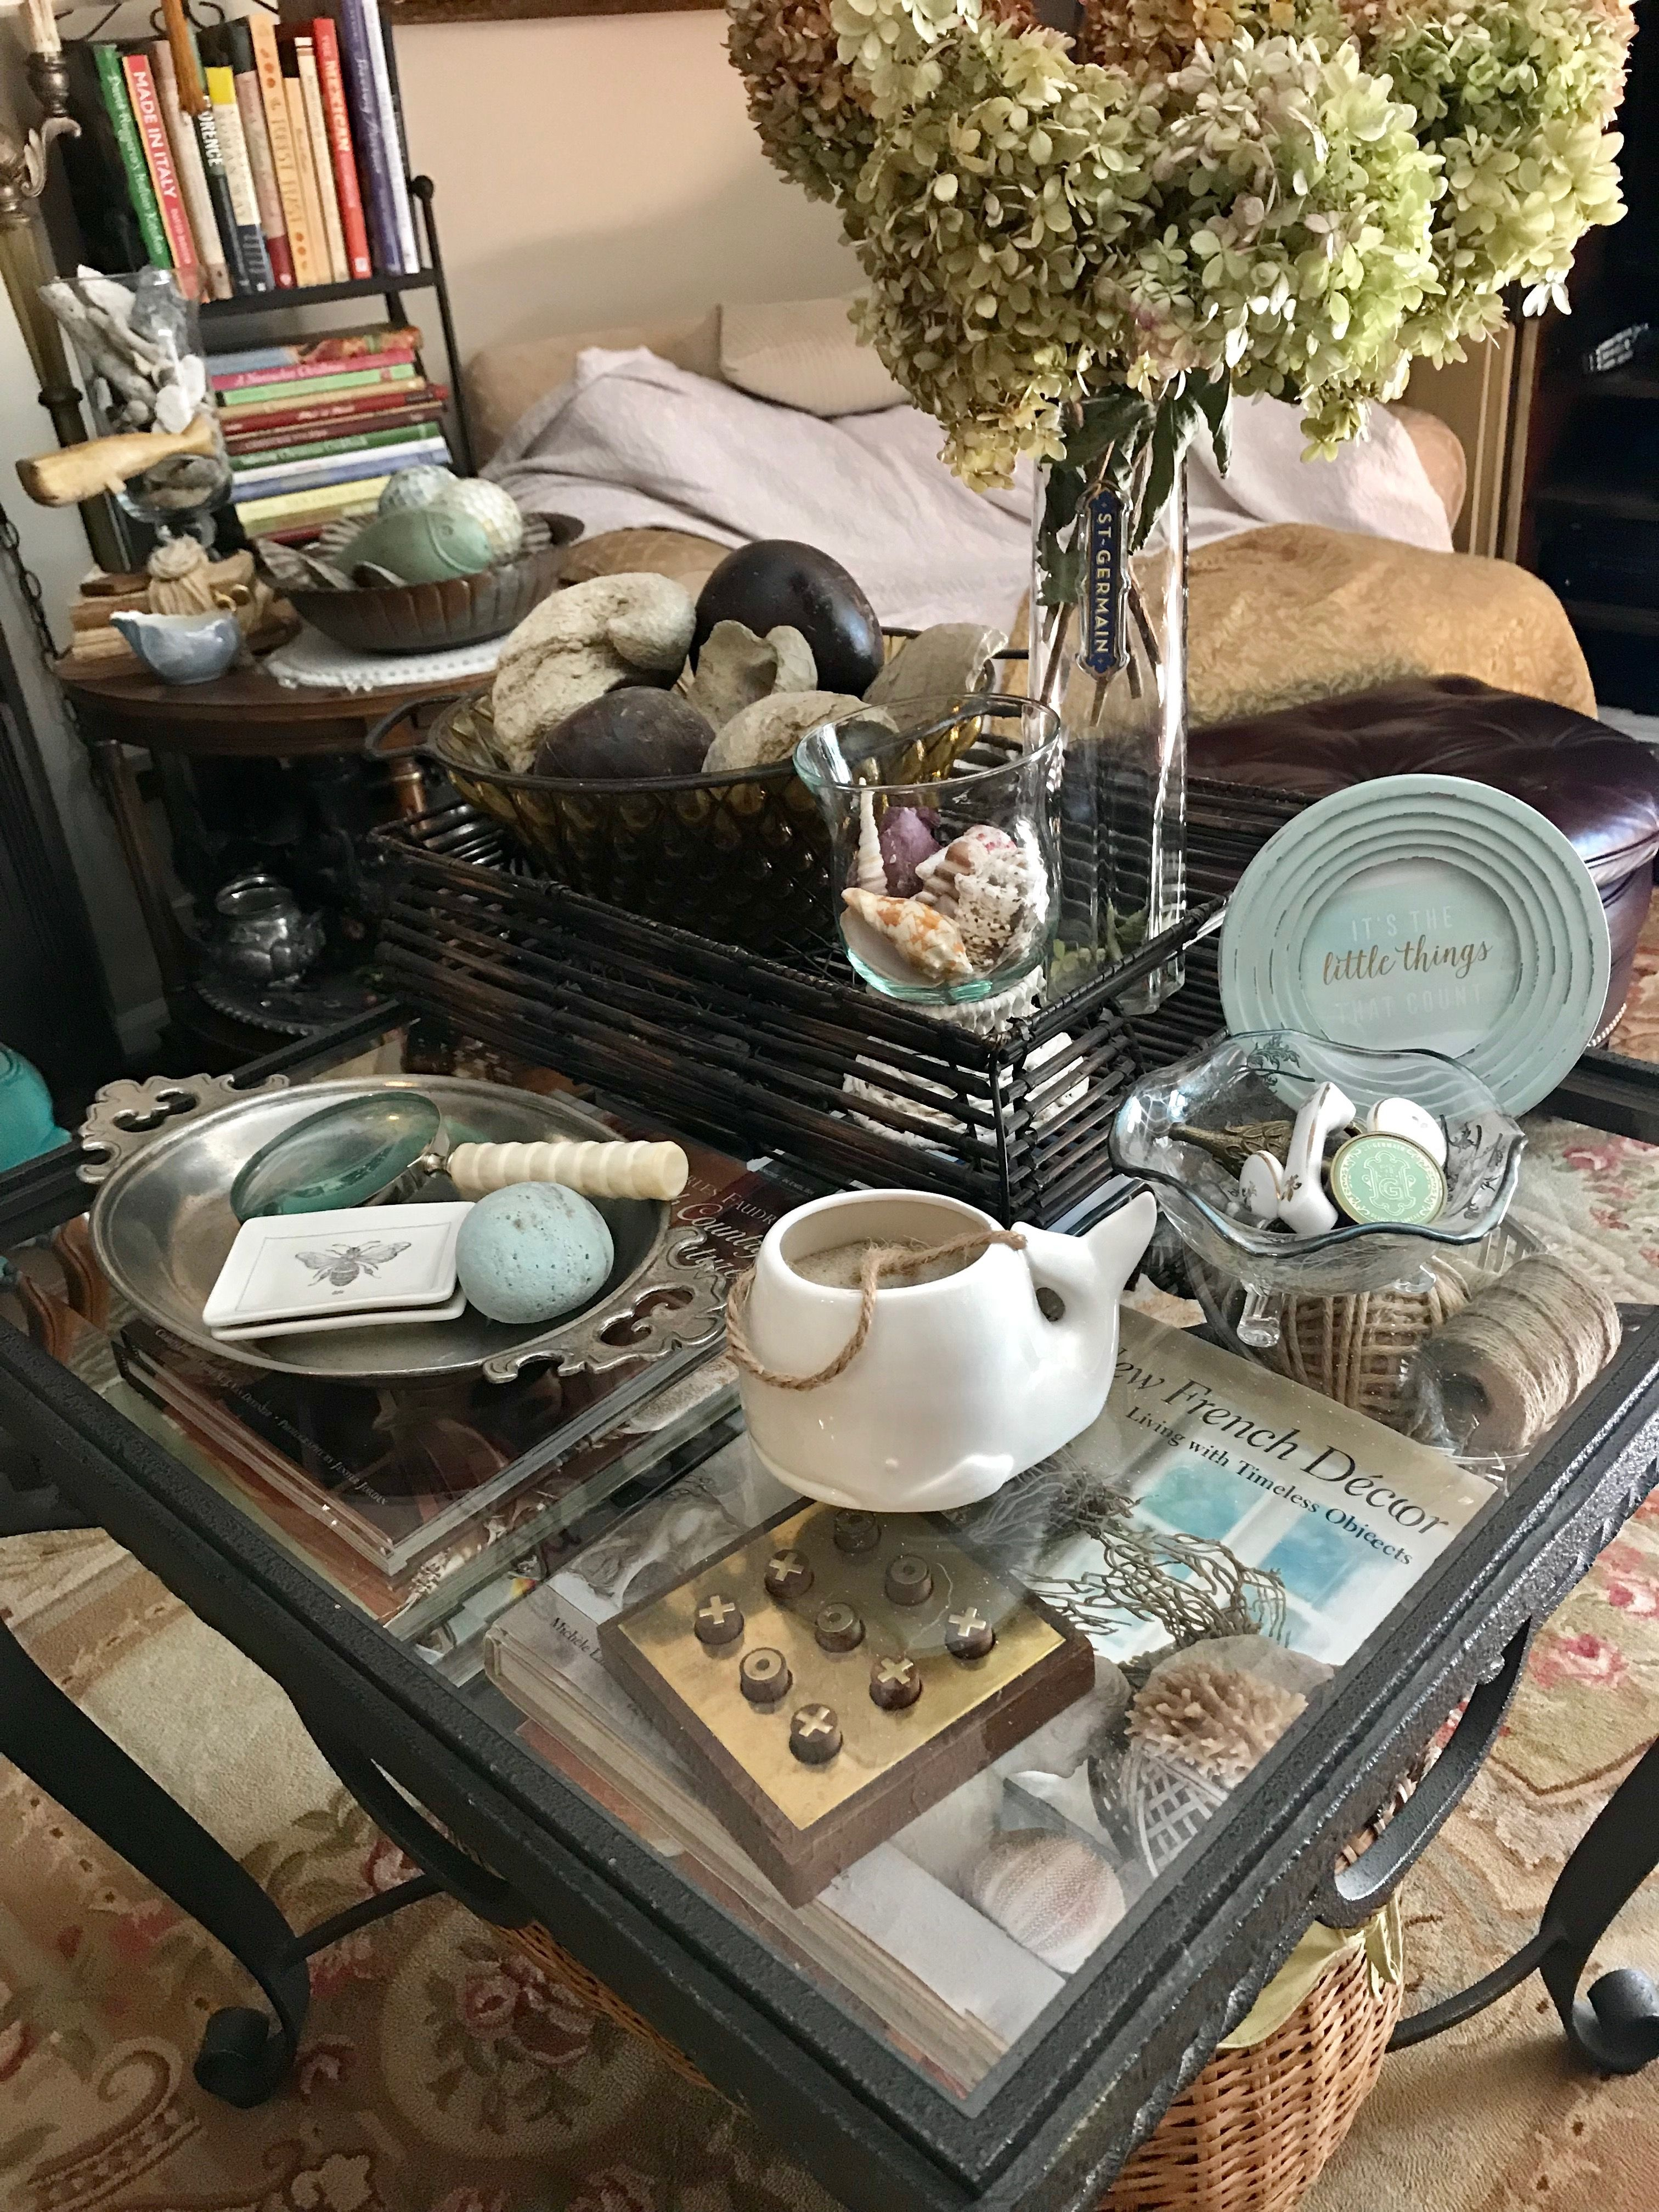 Pin by Leslie Meddings on My Rustic French Country Home- luv